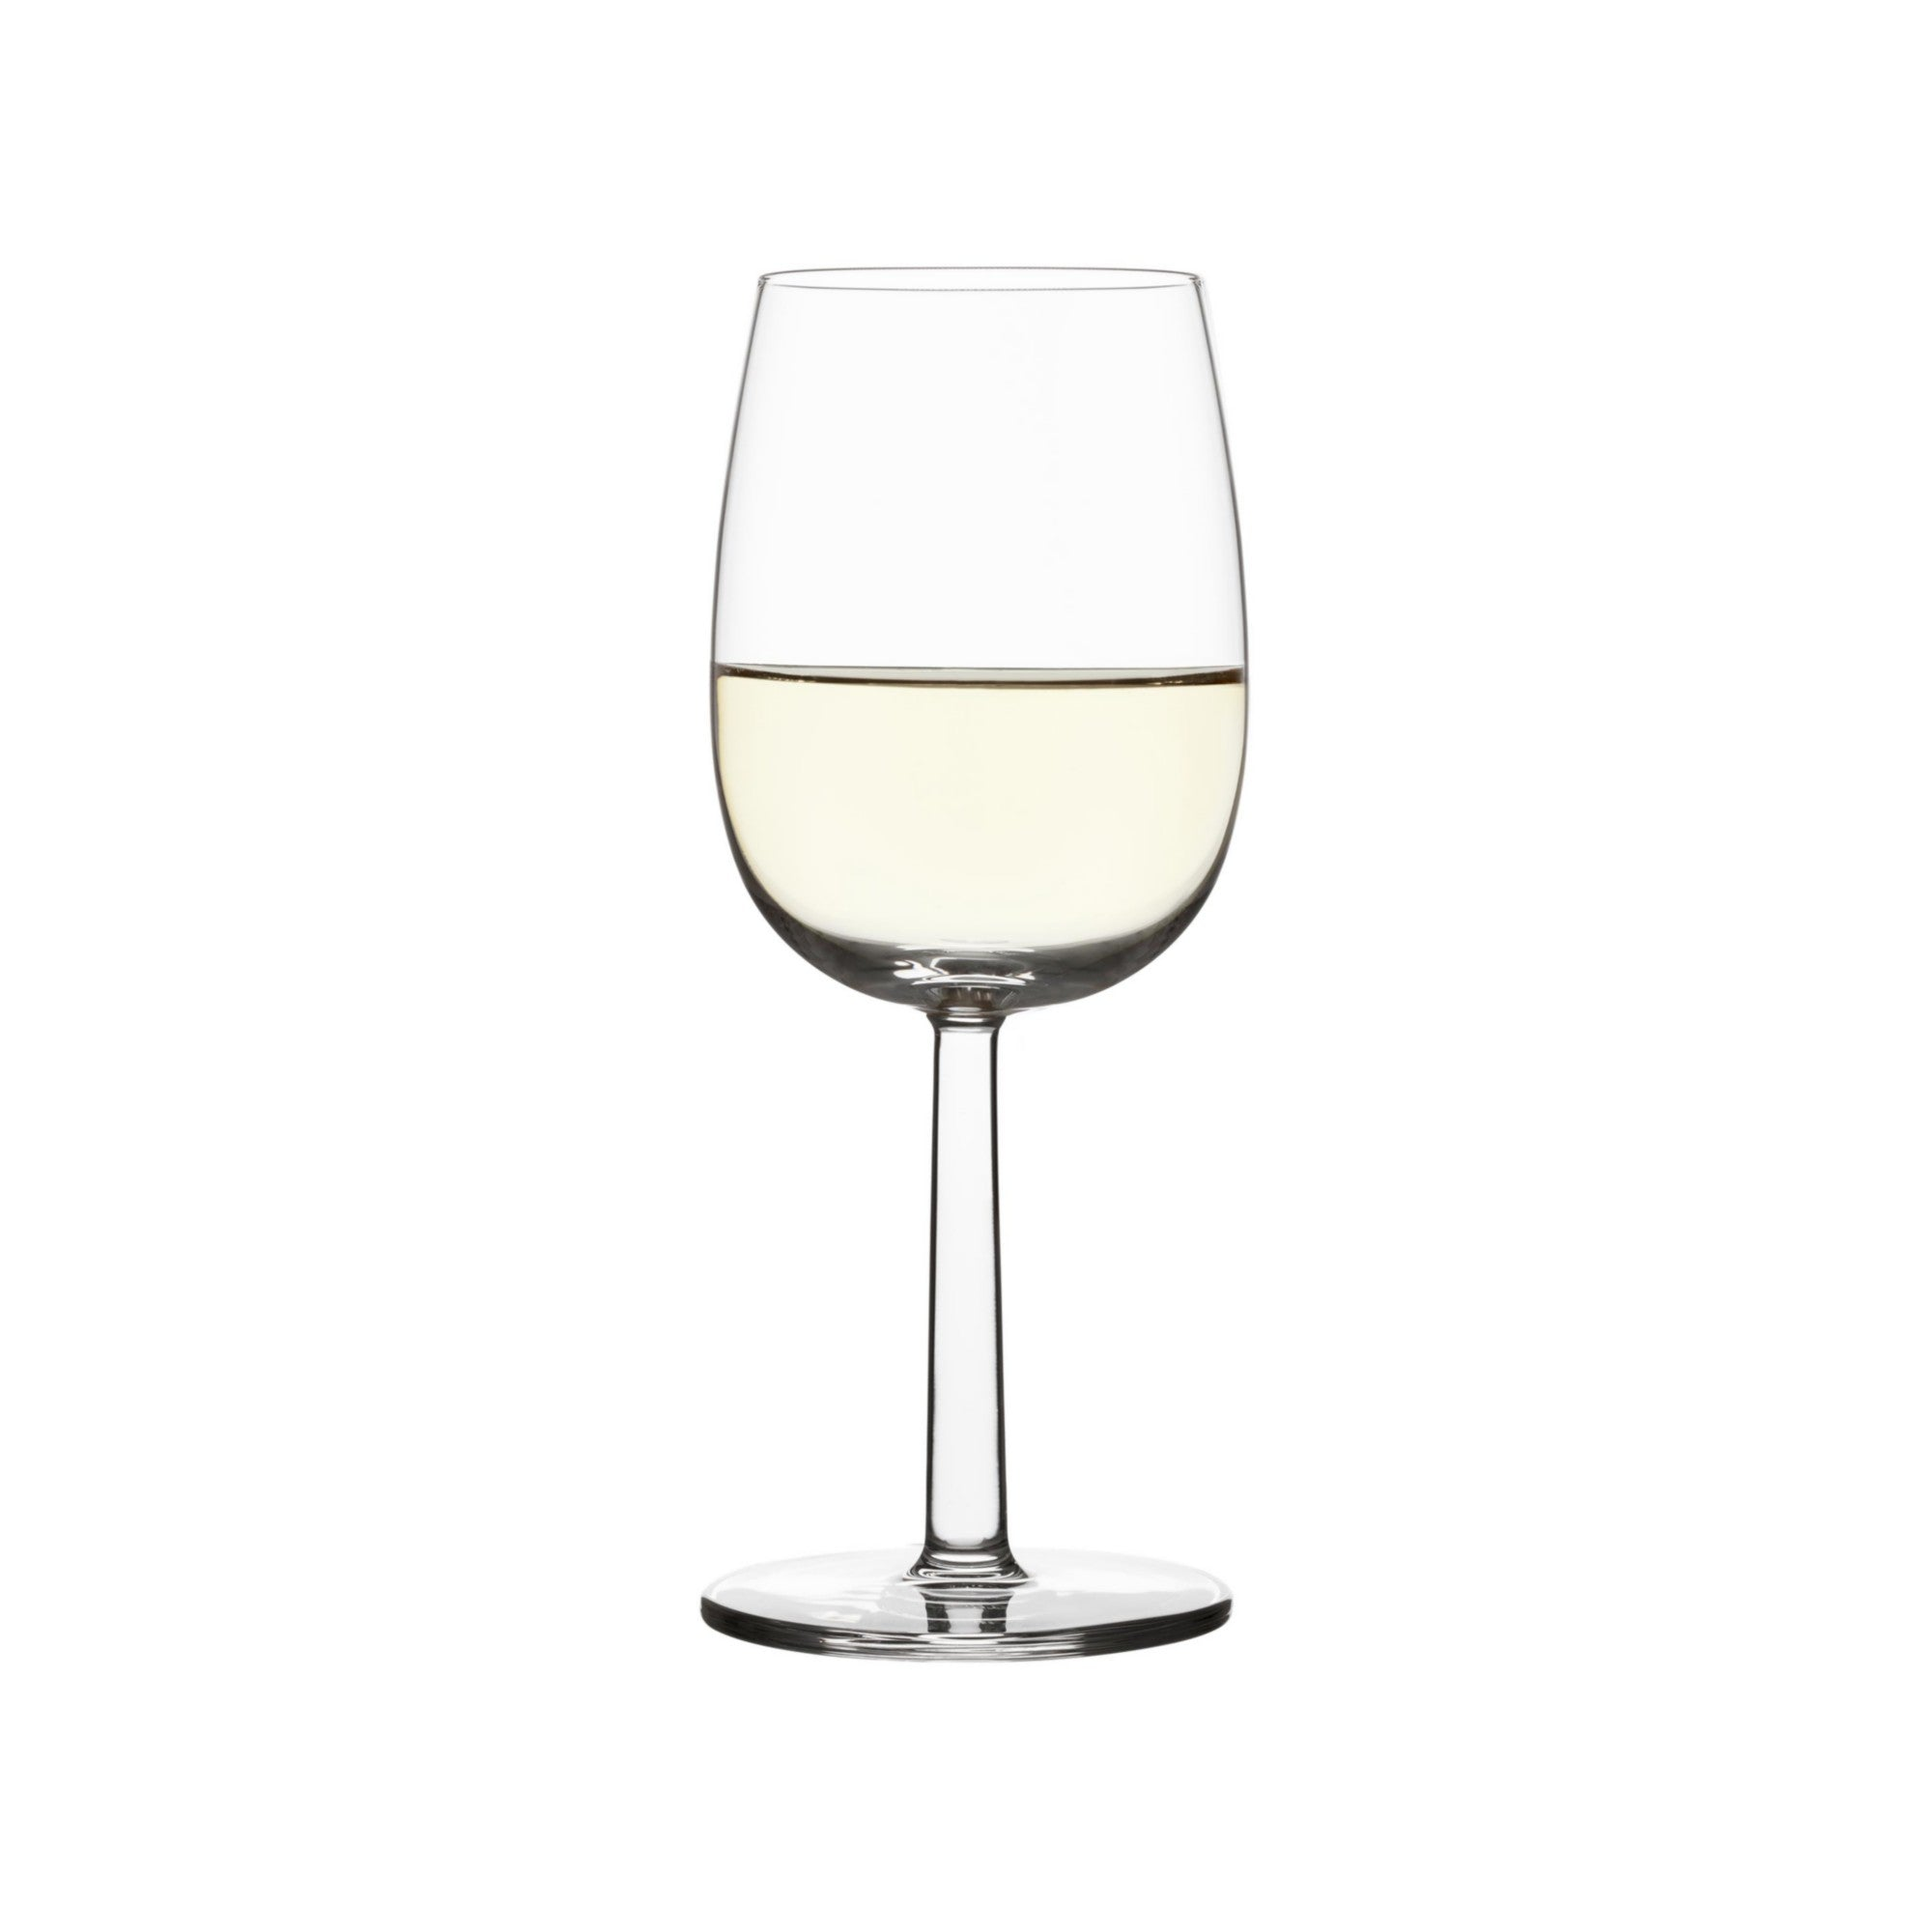 Raami White wine glass set